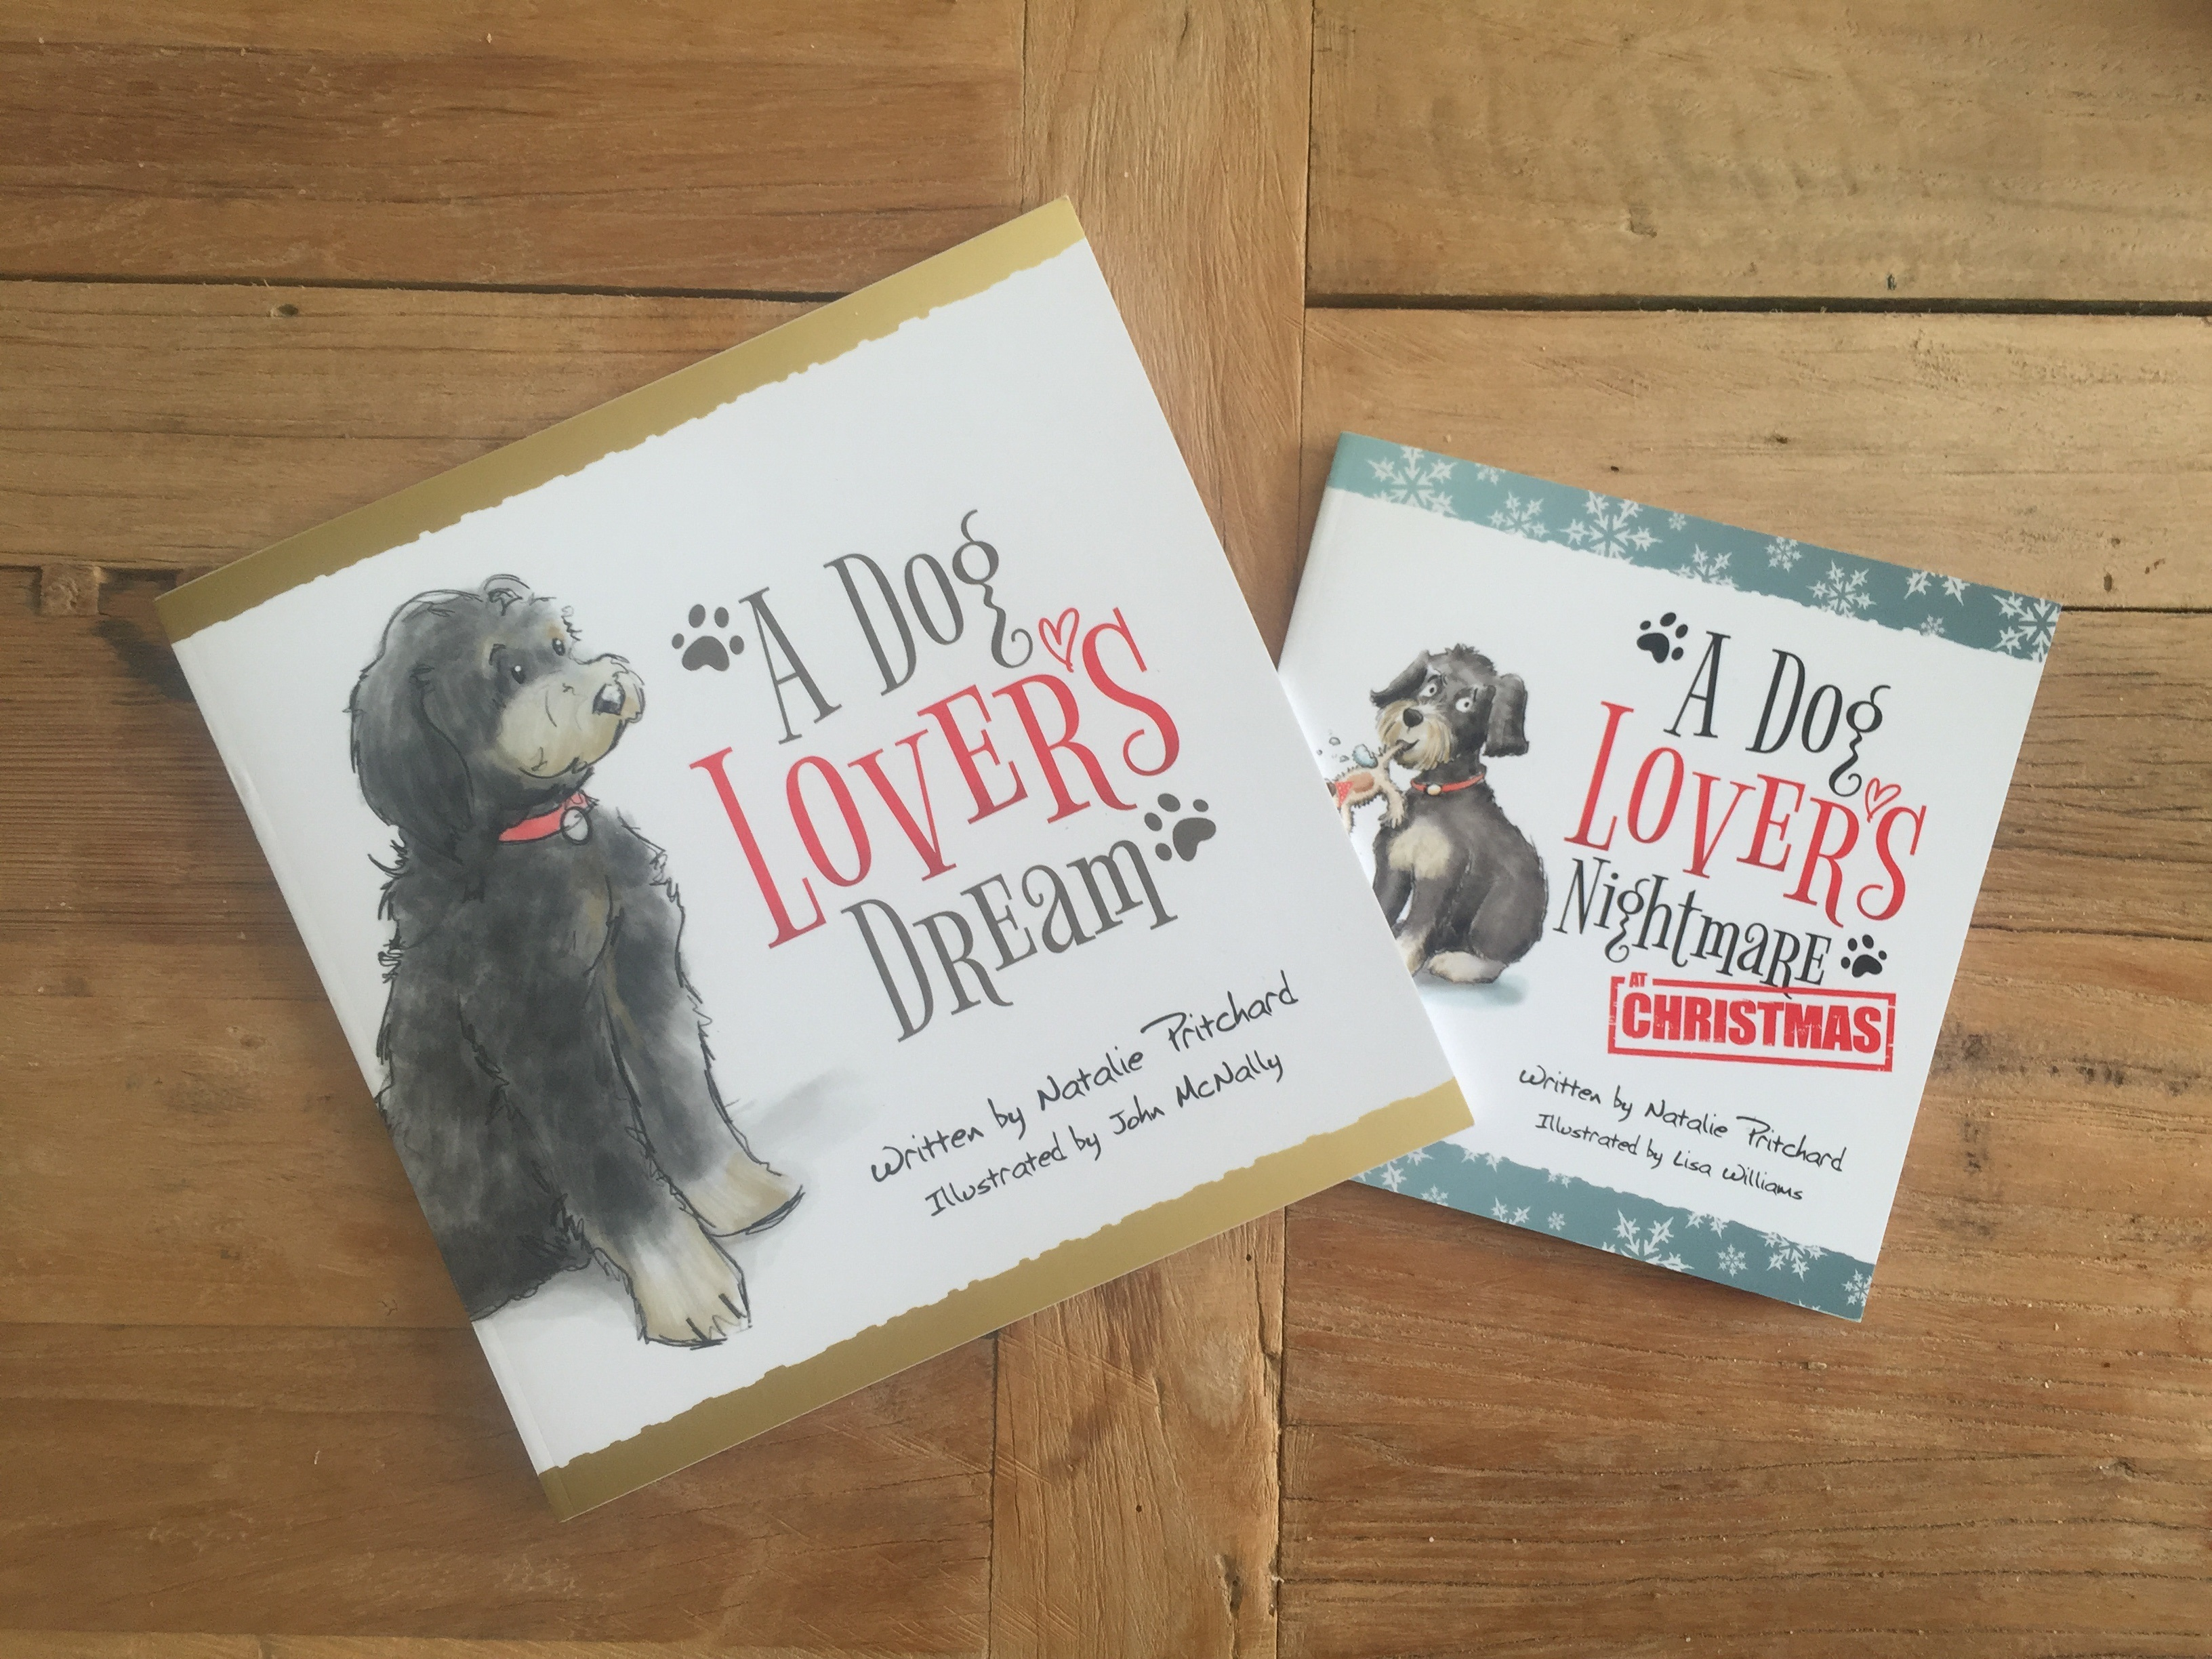 Introduction to A Dog Lover's Dream